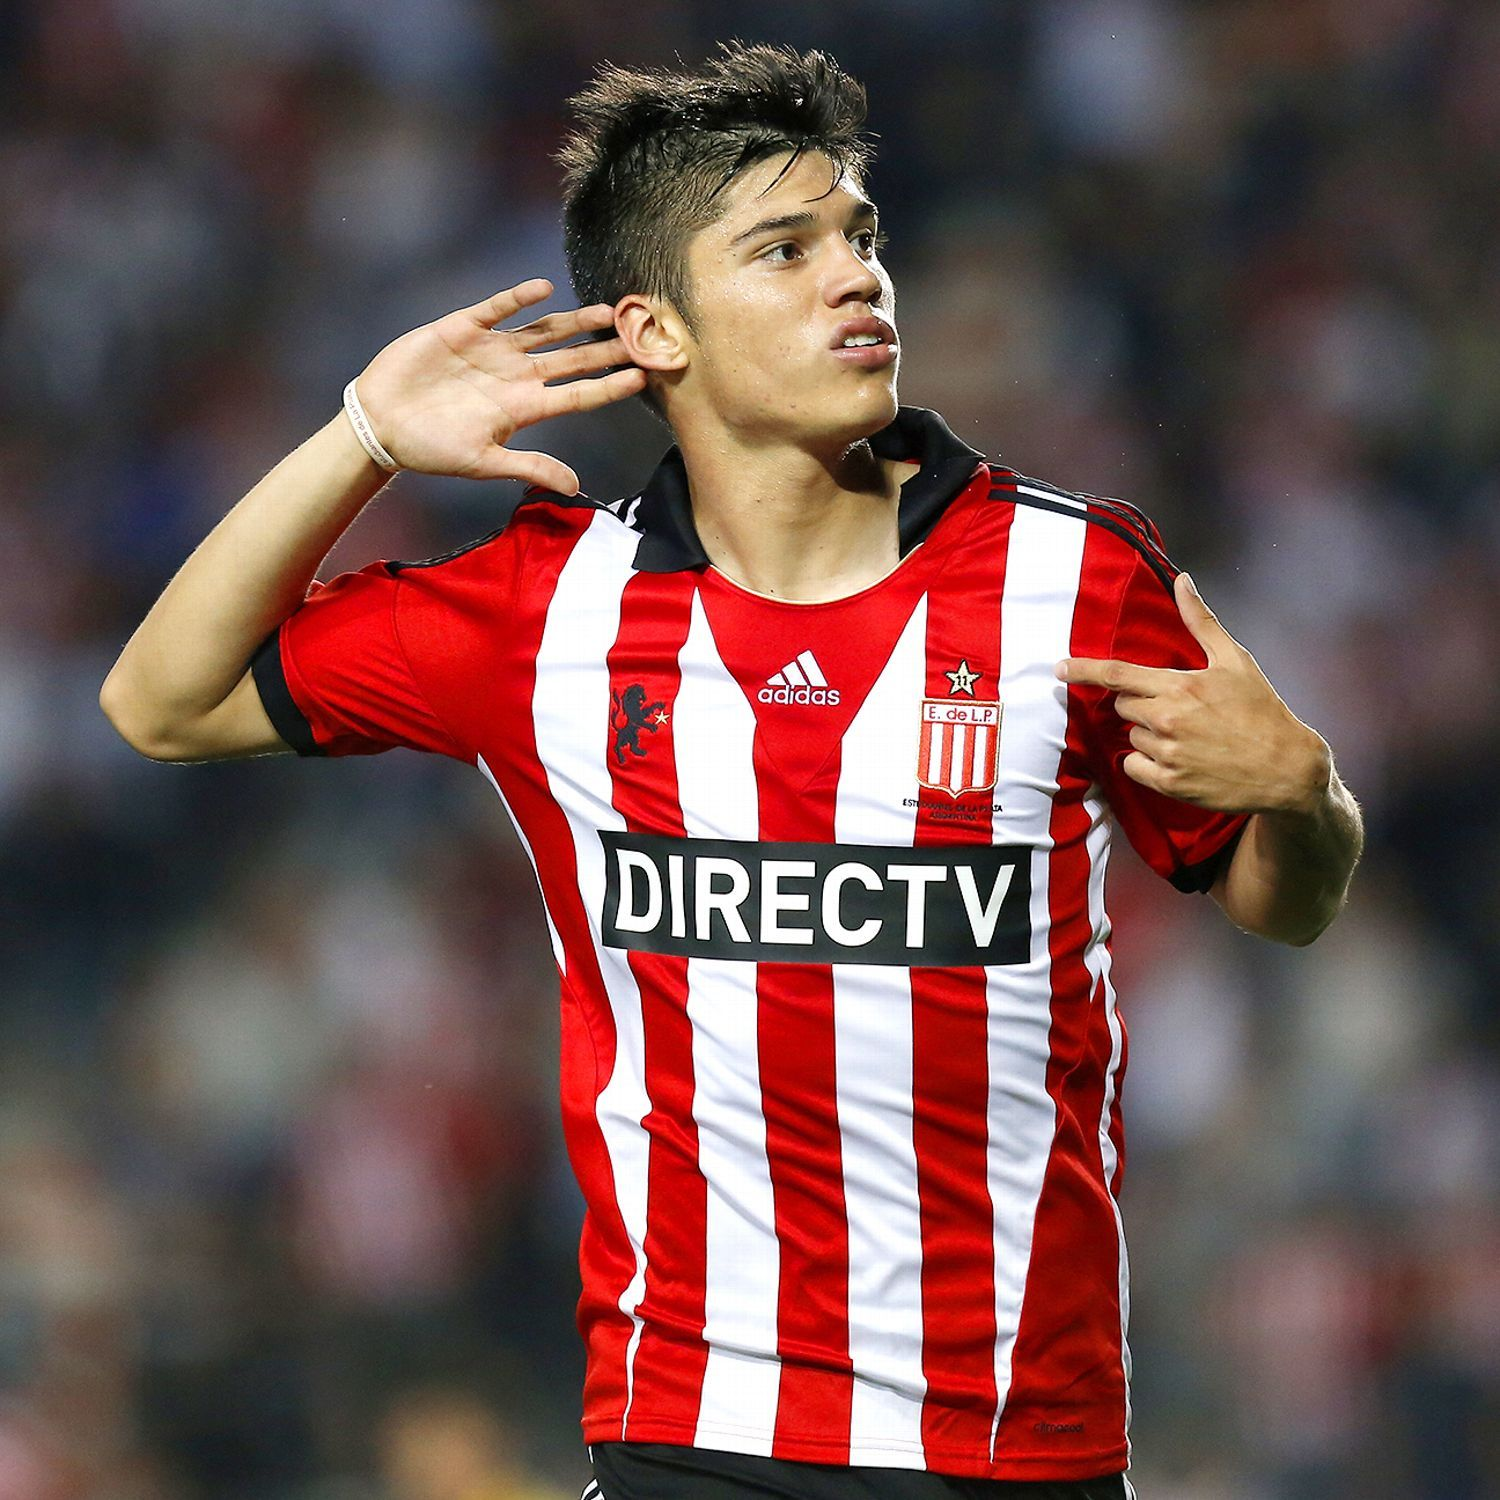 Sevilla reach agreement to sign Joaquin Correa from